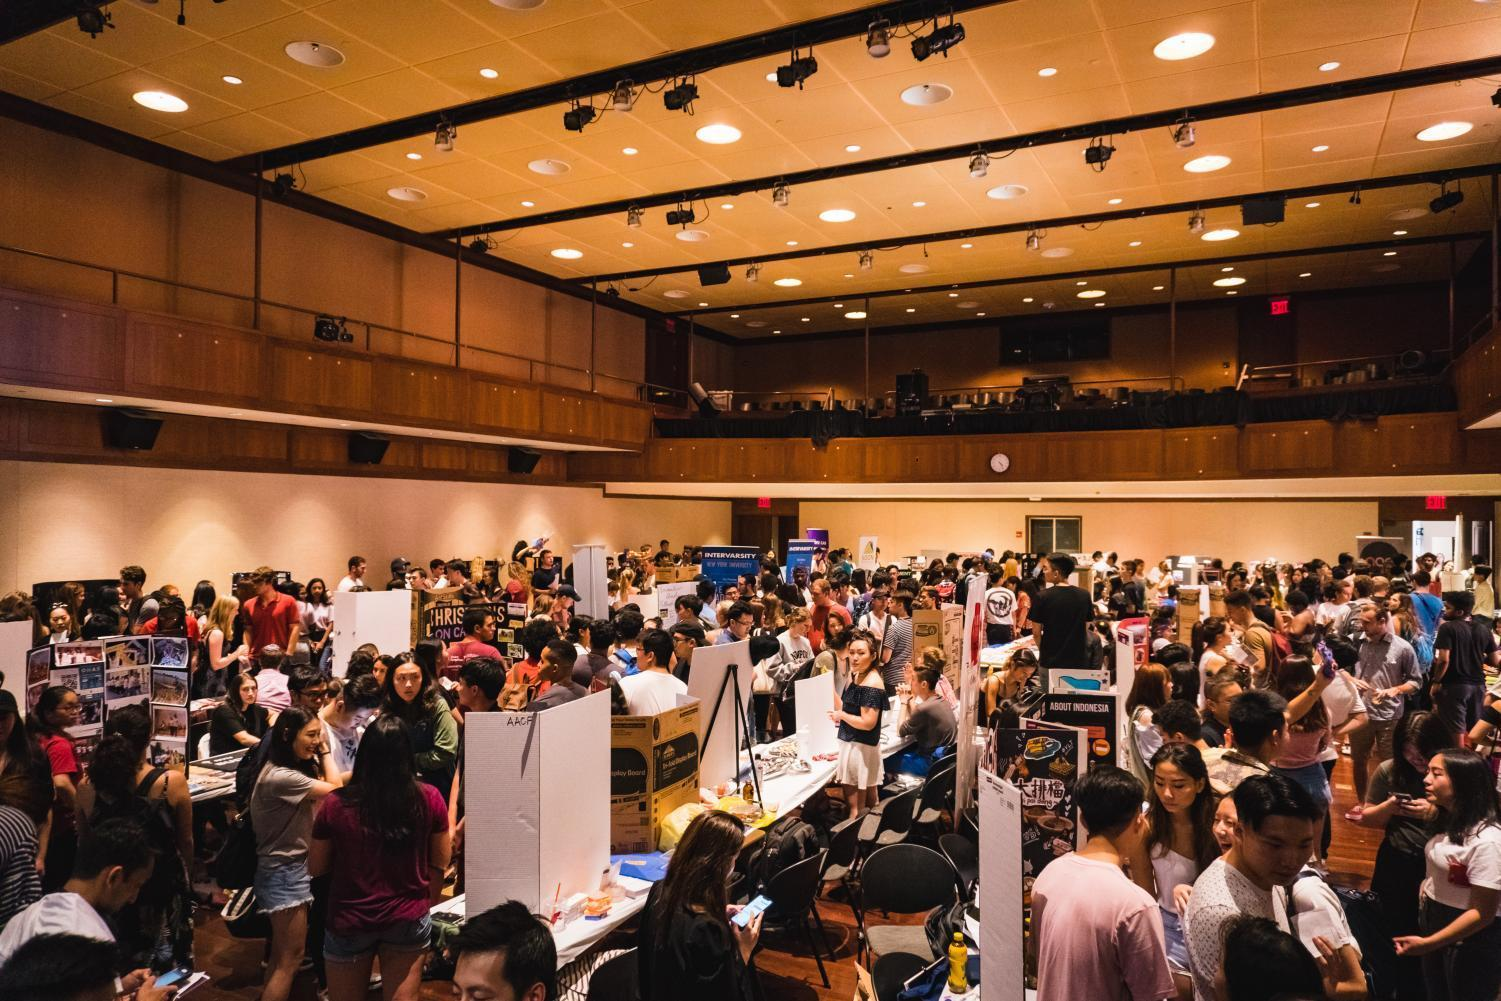 The annual Fall Club Fest was held on Sept. 5 on the 9th and 10th floors of the Kimmel Center for University Life.